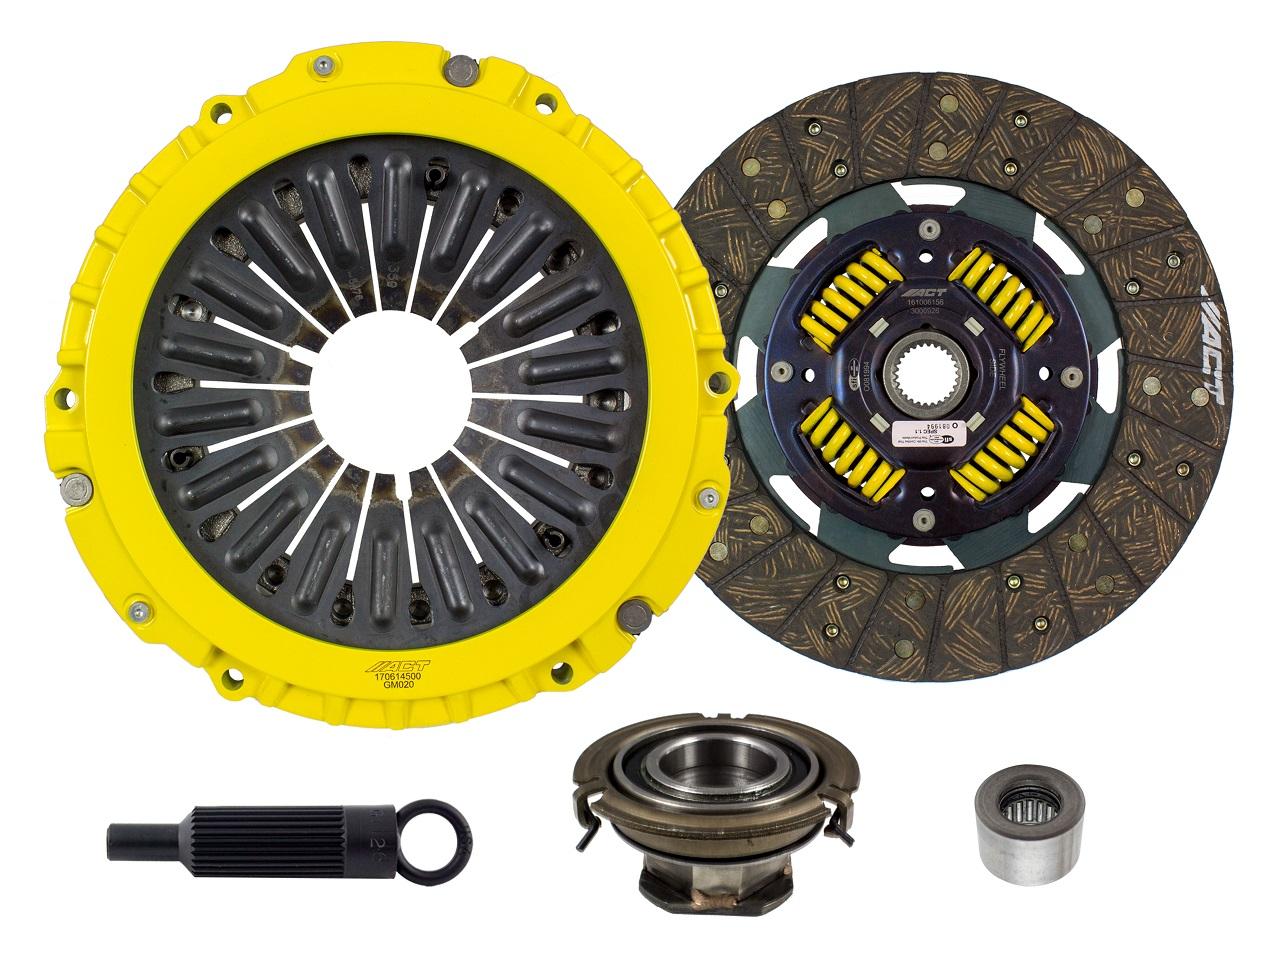 93-97 LT1 Fbody Advanced Clutch Technology Race Clutch Kit - 815 ft-lbs